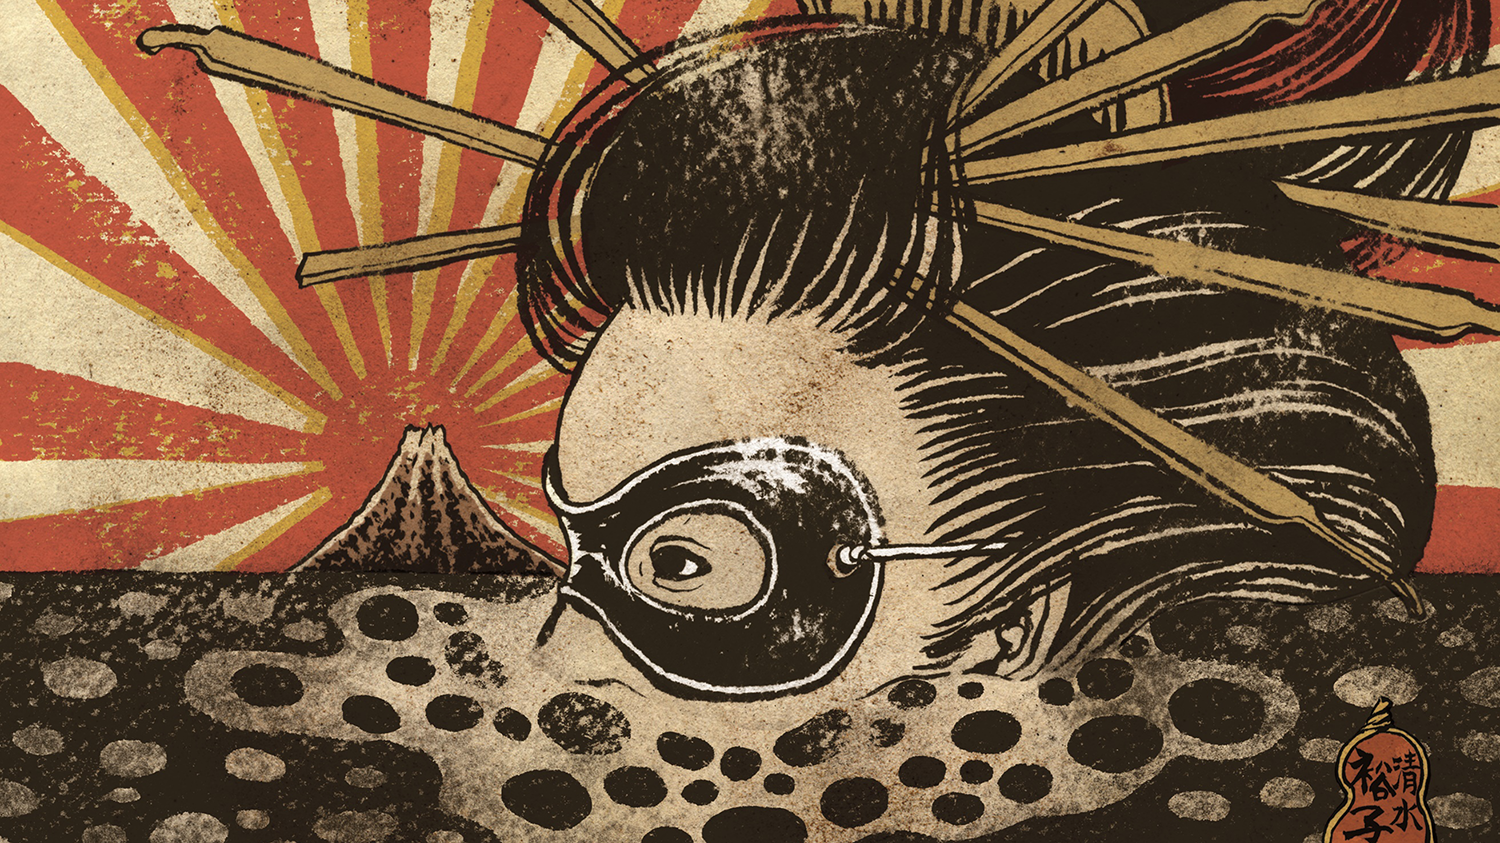 yuko shimizu u2019s new book shows the best of her rich  surreal work